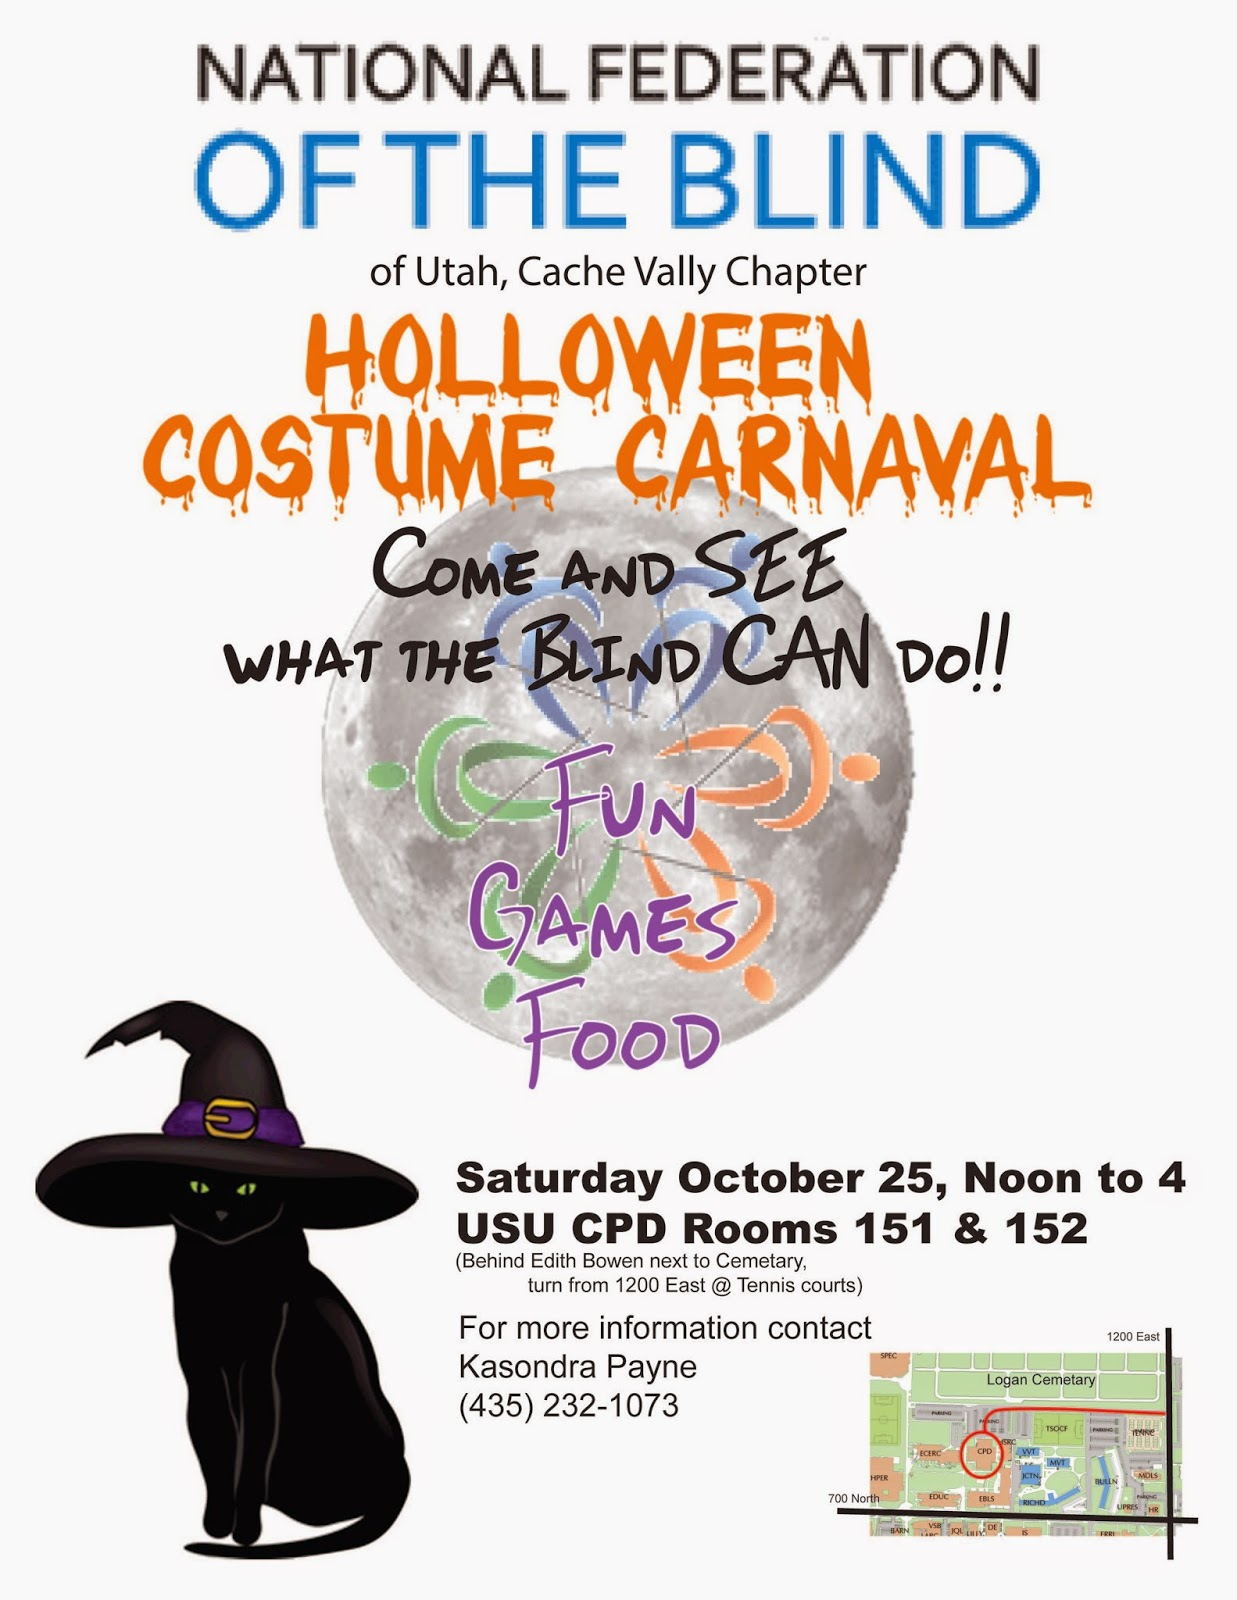 The NFB Halloween Costume Carnival will be Oct. 25 from noon to 4 at the CPD.